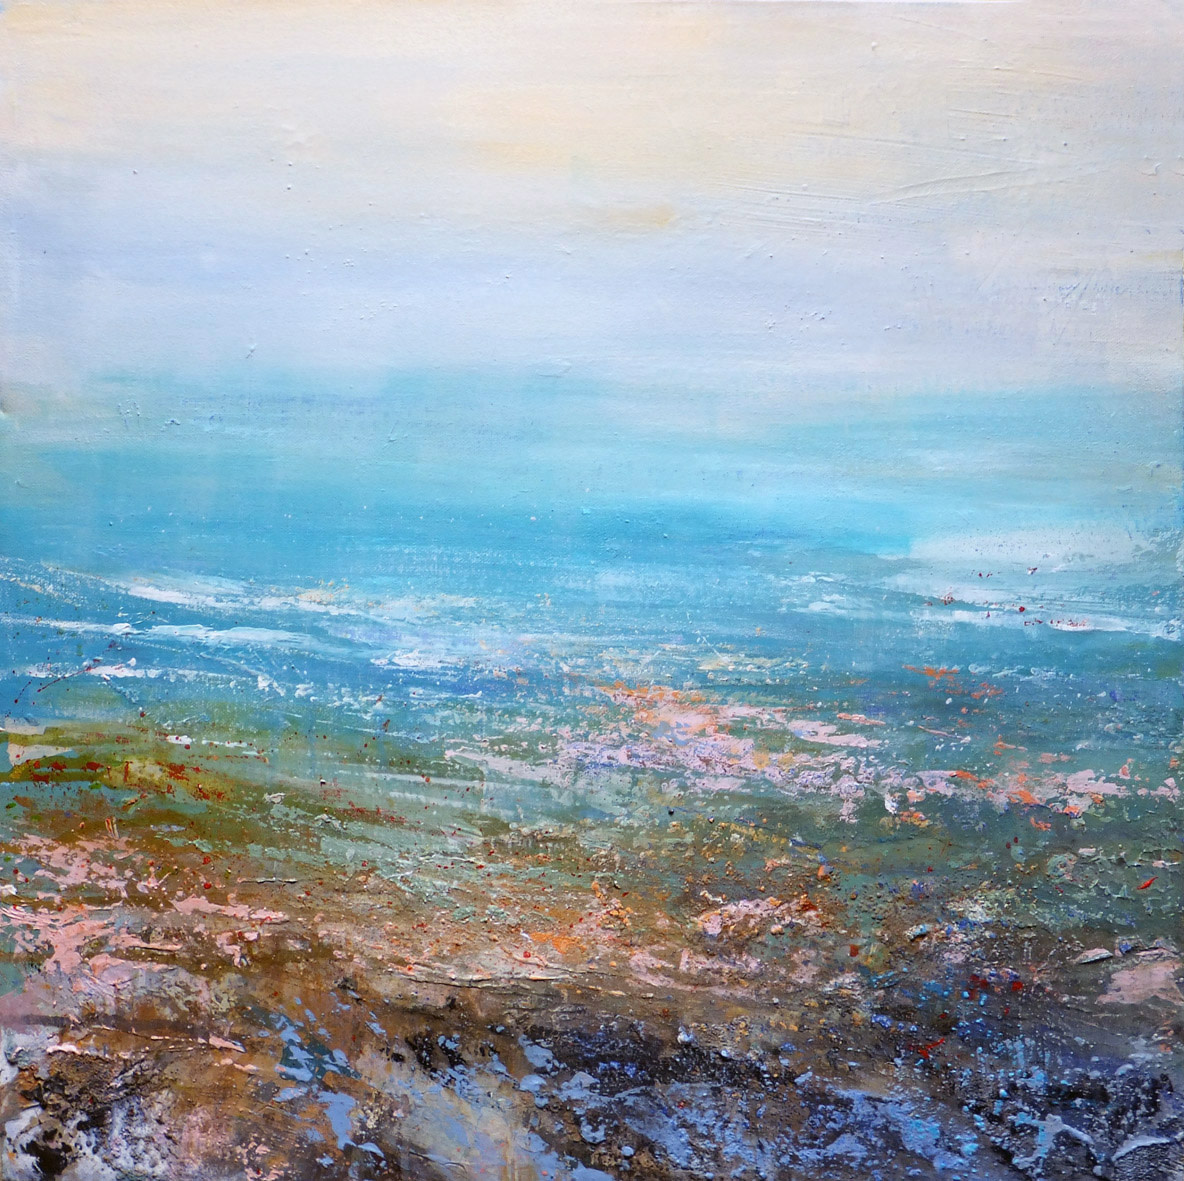 """<span class=""""link fancybox-details-link""""><a href=""""/artists/66-joanne-last/works/6358-joanne-last-remembering-rock-pools-2-2019/"""">View Detail Page</a></span><div class=""""artist""""><strong>Joanne Last</strong></div> <div class=""""title""""><em>Remembering Rock Pools 2</em>, 2019</div> <div class=""""signed_and_dated"""">Signed and dated on the reverse</div> <div class=""""medium"""">Mixed media on canvas</div> <div class=""""dimensions"""">60 x 60cm</div><div class=""""copyright_line"""">Own Art £90 x 10 months</div>"""